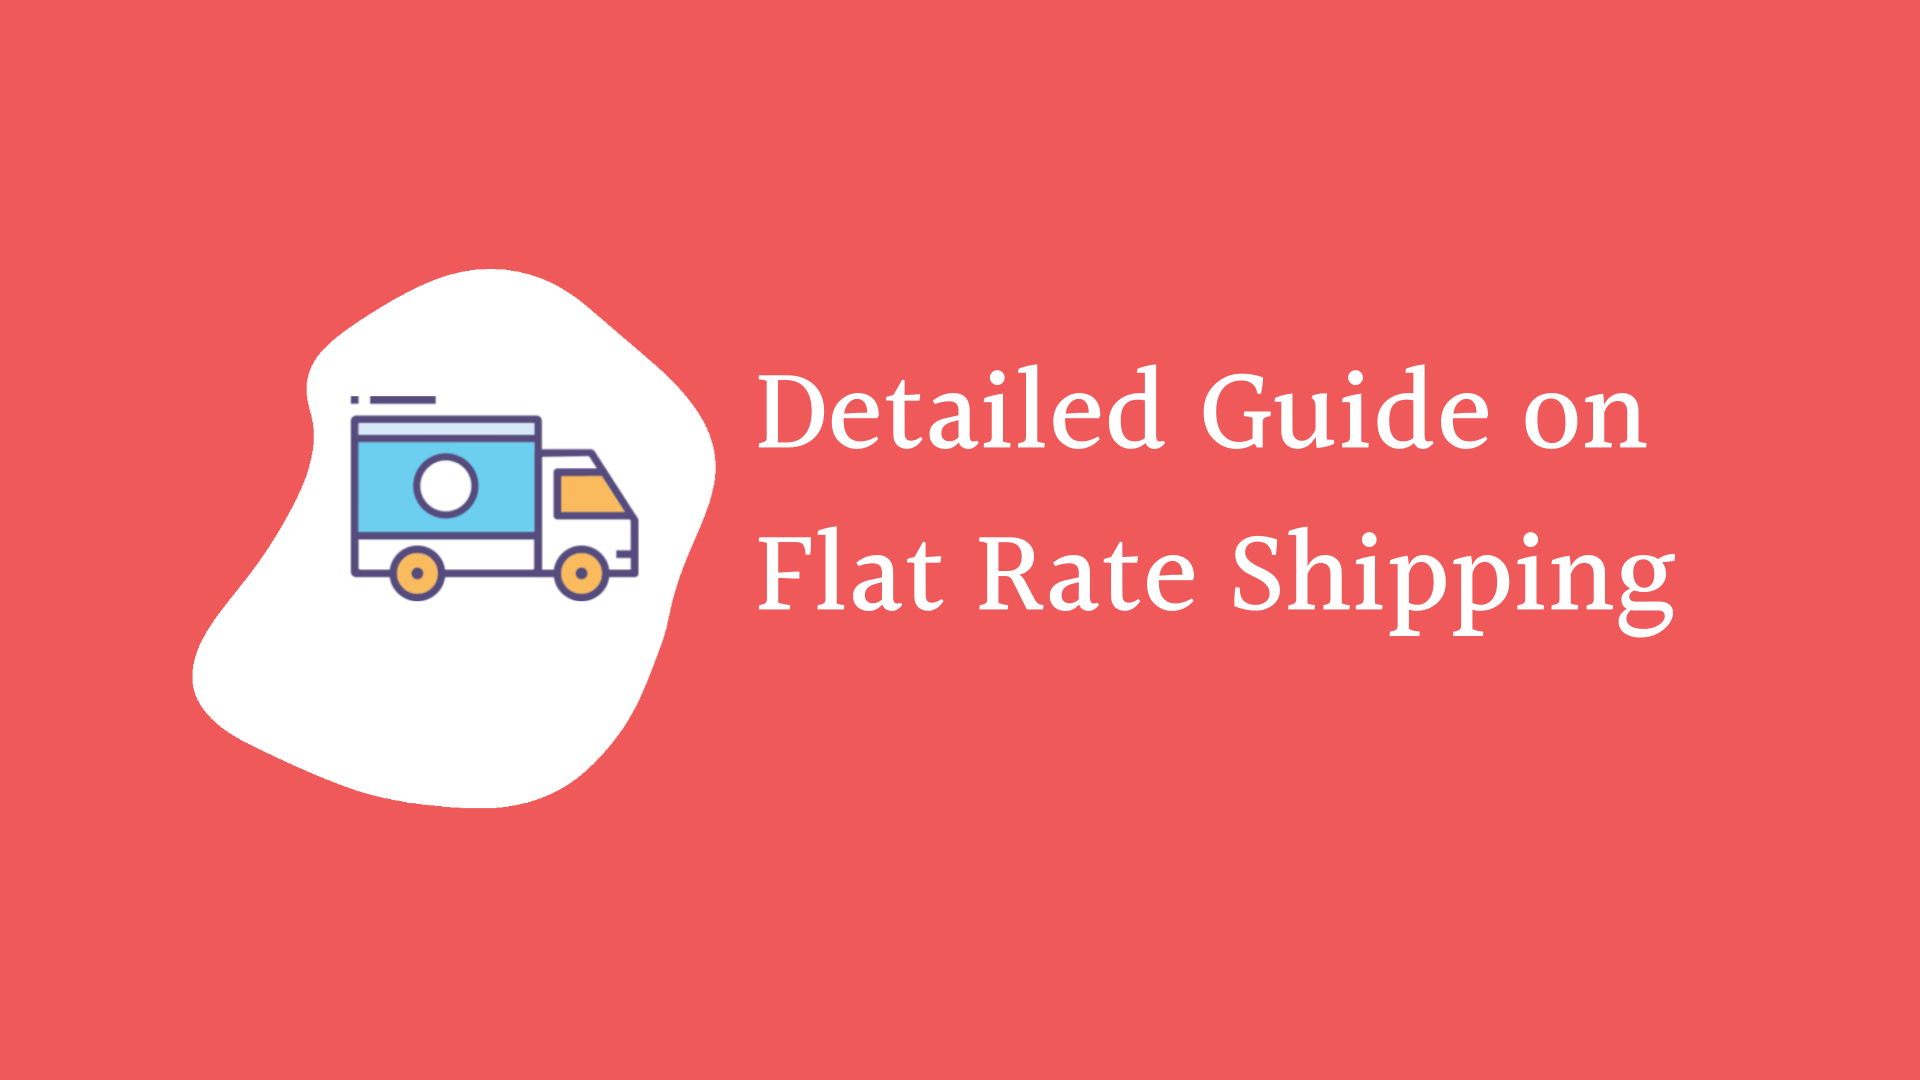 A Detailed Guide on Flat Rate Shipping